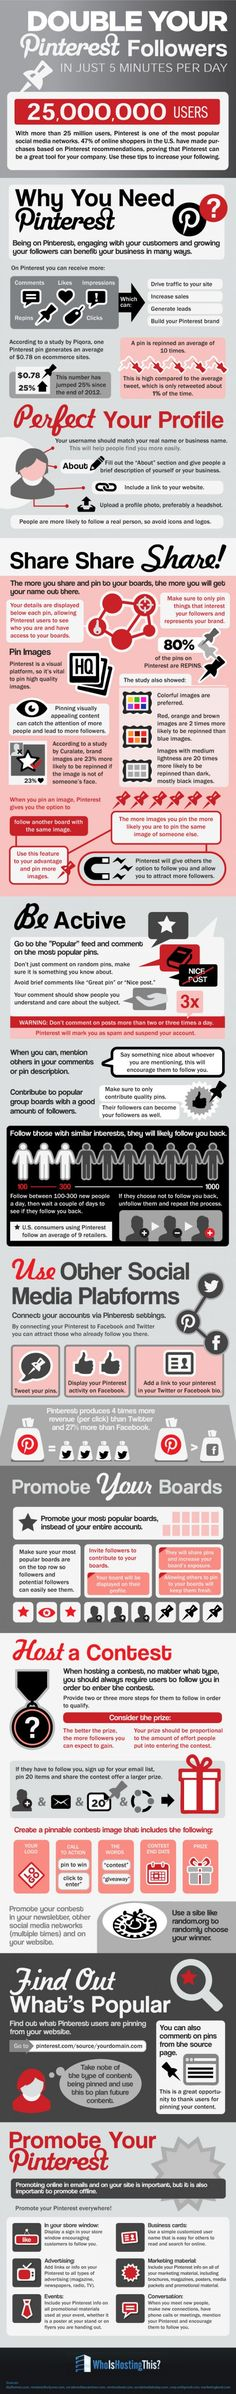 Seven Ways to Increase Your Followers on Pinterest [Infographic]